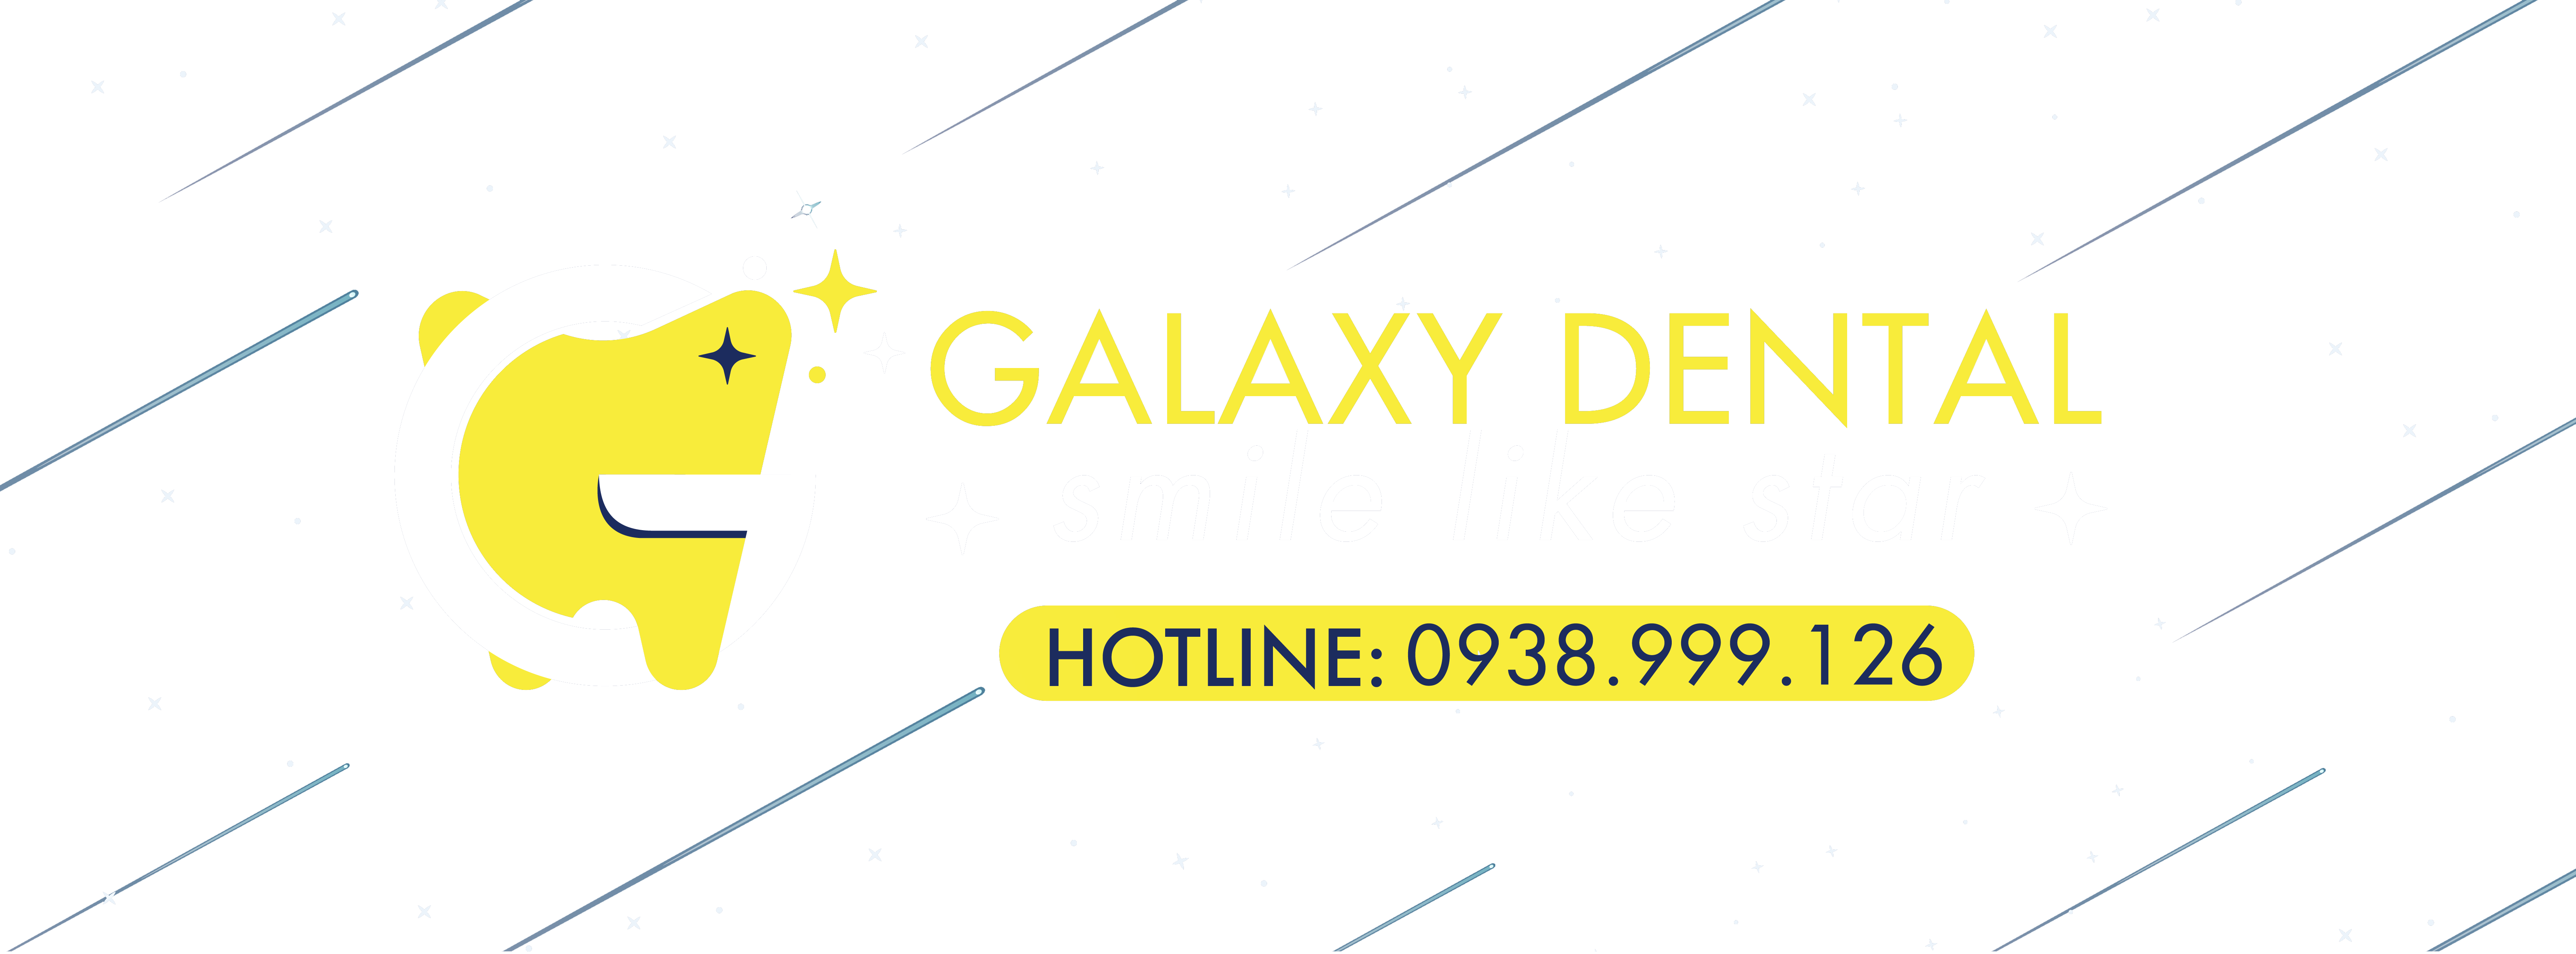 https://galaxydental.vn/img/cover_avatr-04.png